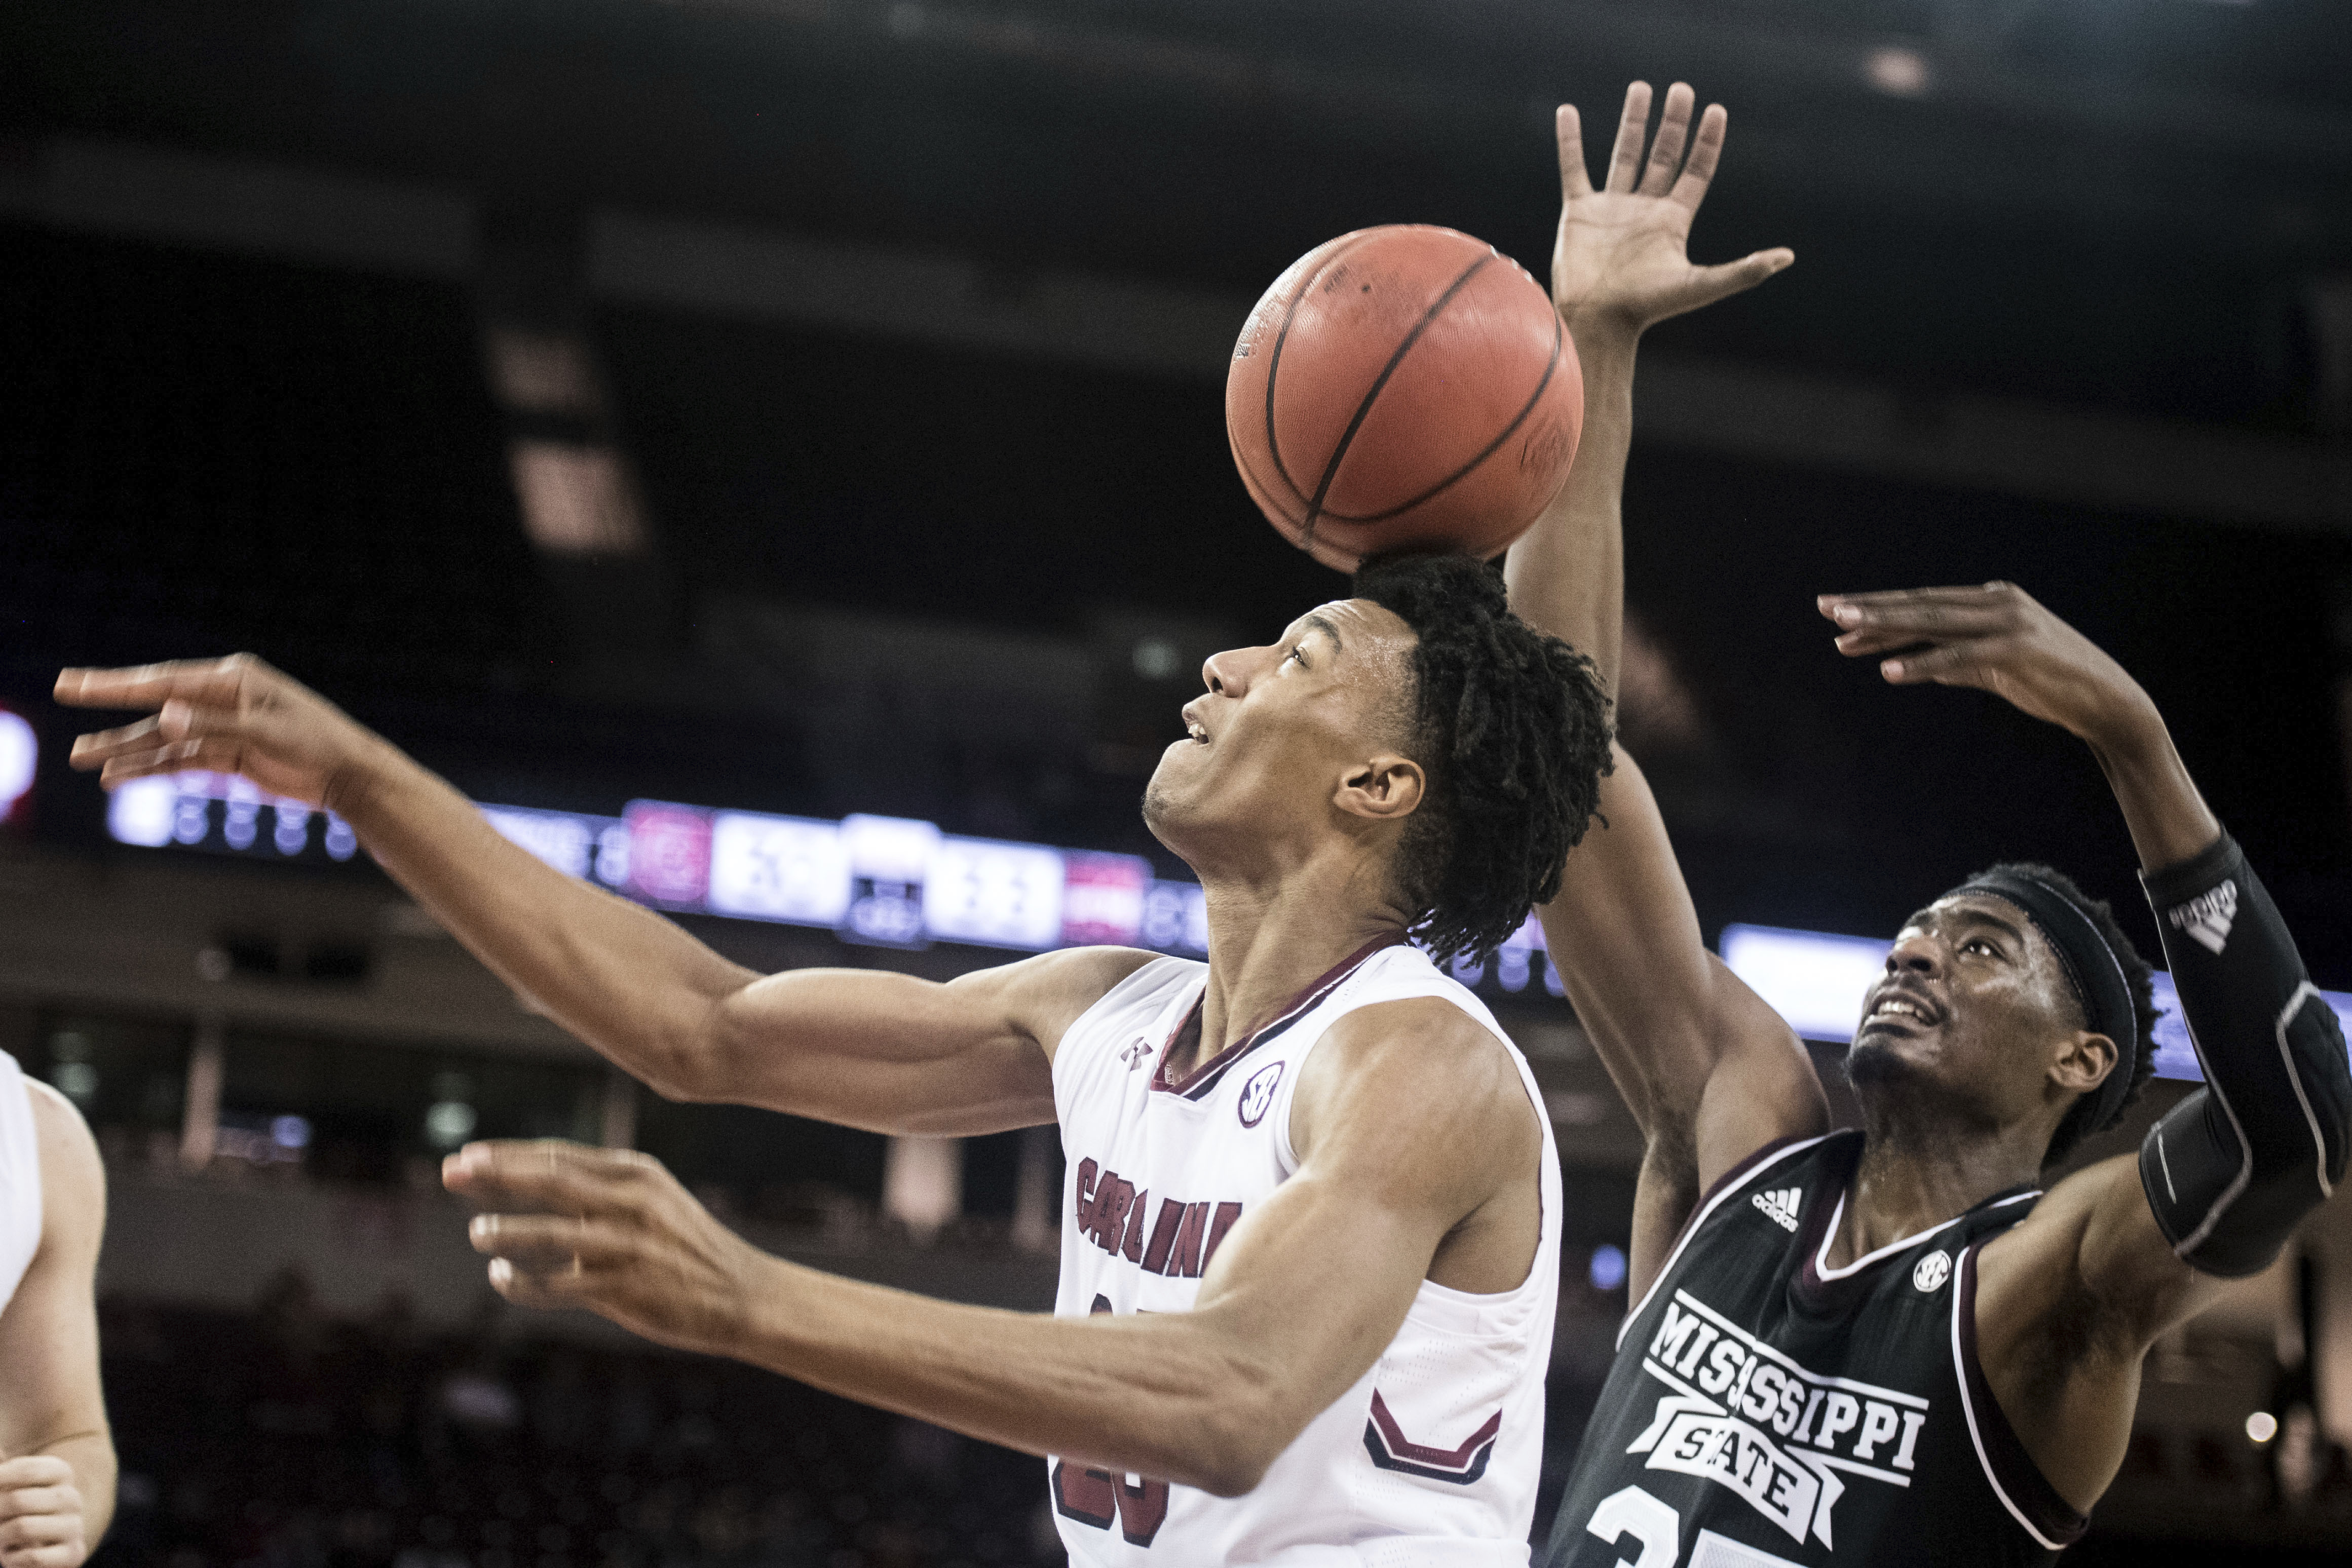 South Carolina guard A.J. Lawson, left, has a shot blocked by Mississippi State forward Aric Holman (35) during the first half of an NCAA college basketball game Tuesday, Jan. 8, 2019, in Columbia, S.C. (AP Photo/Sean Rayford)